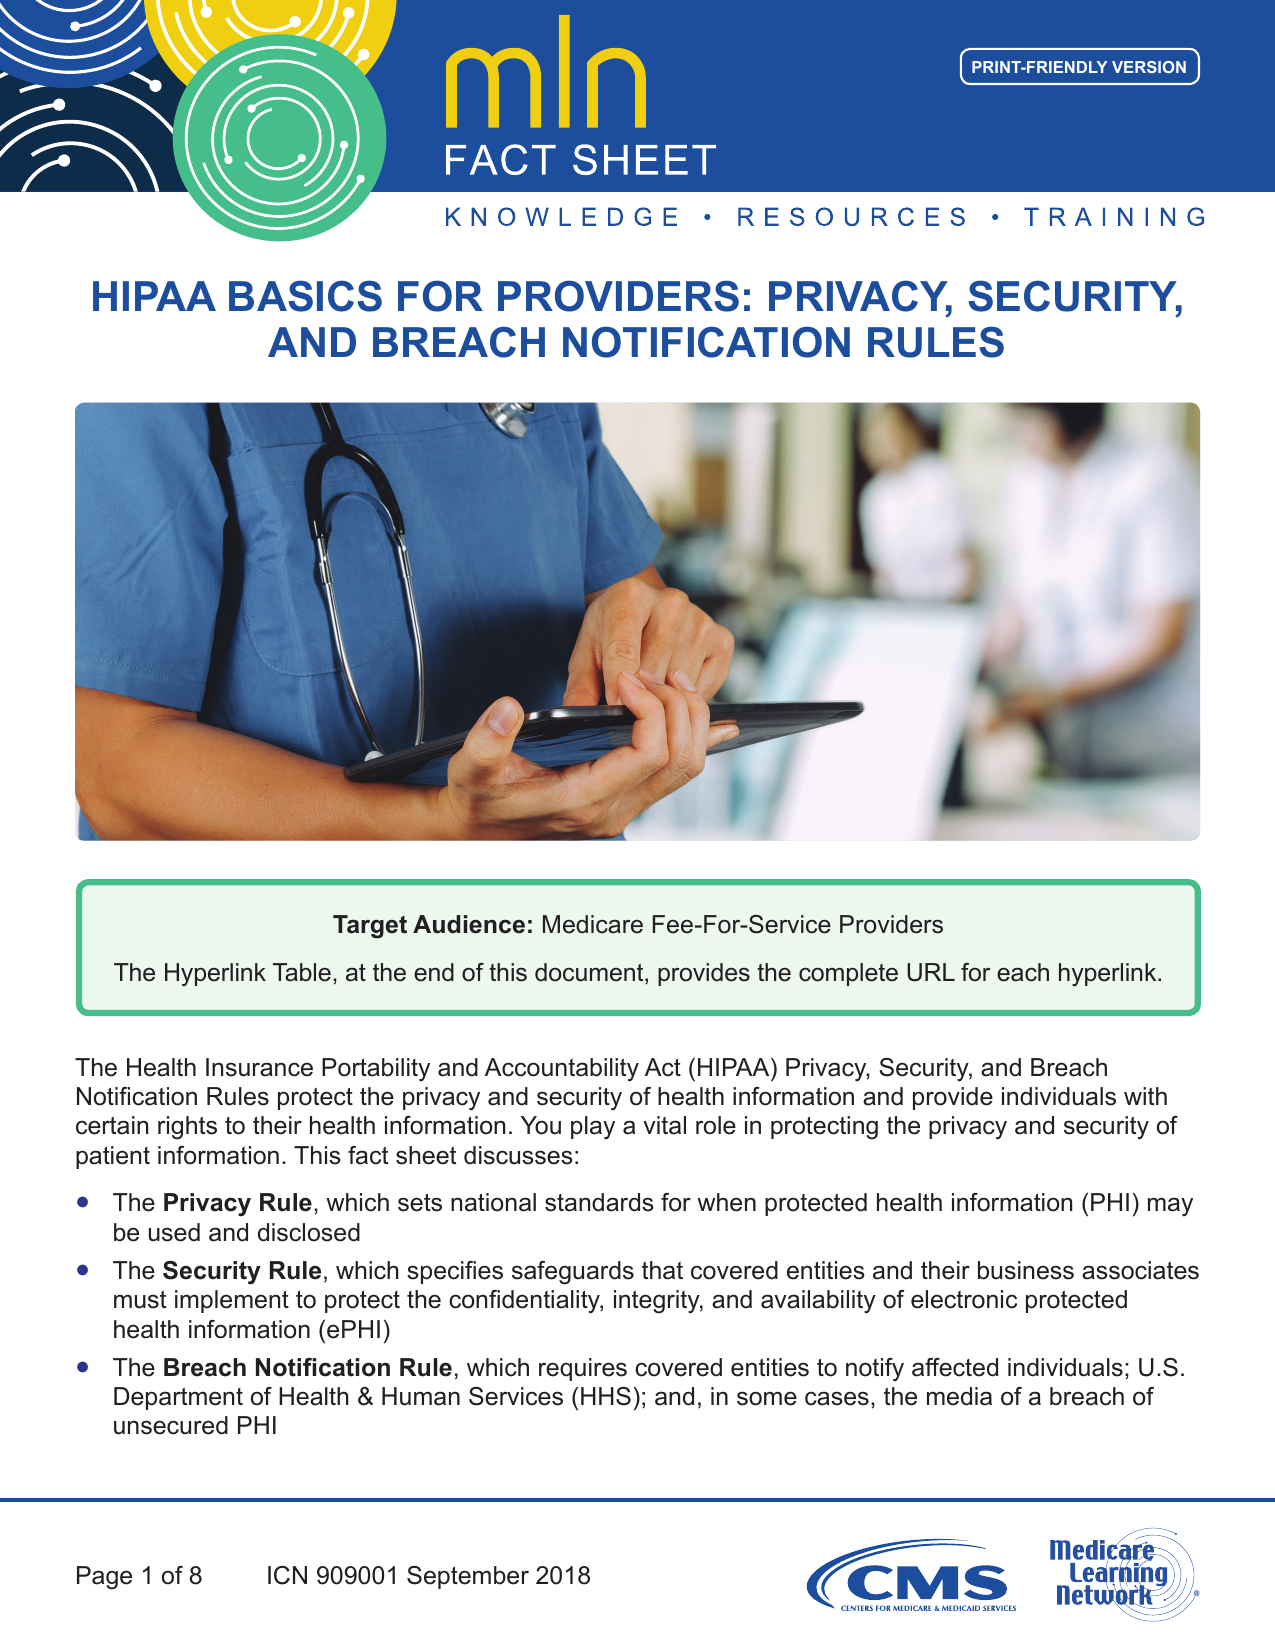 Hipaa Basics For Providers: Privacy, Security, And